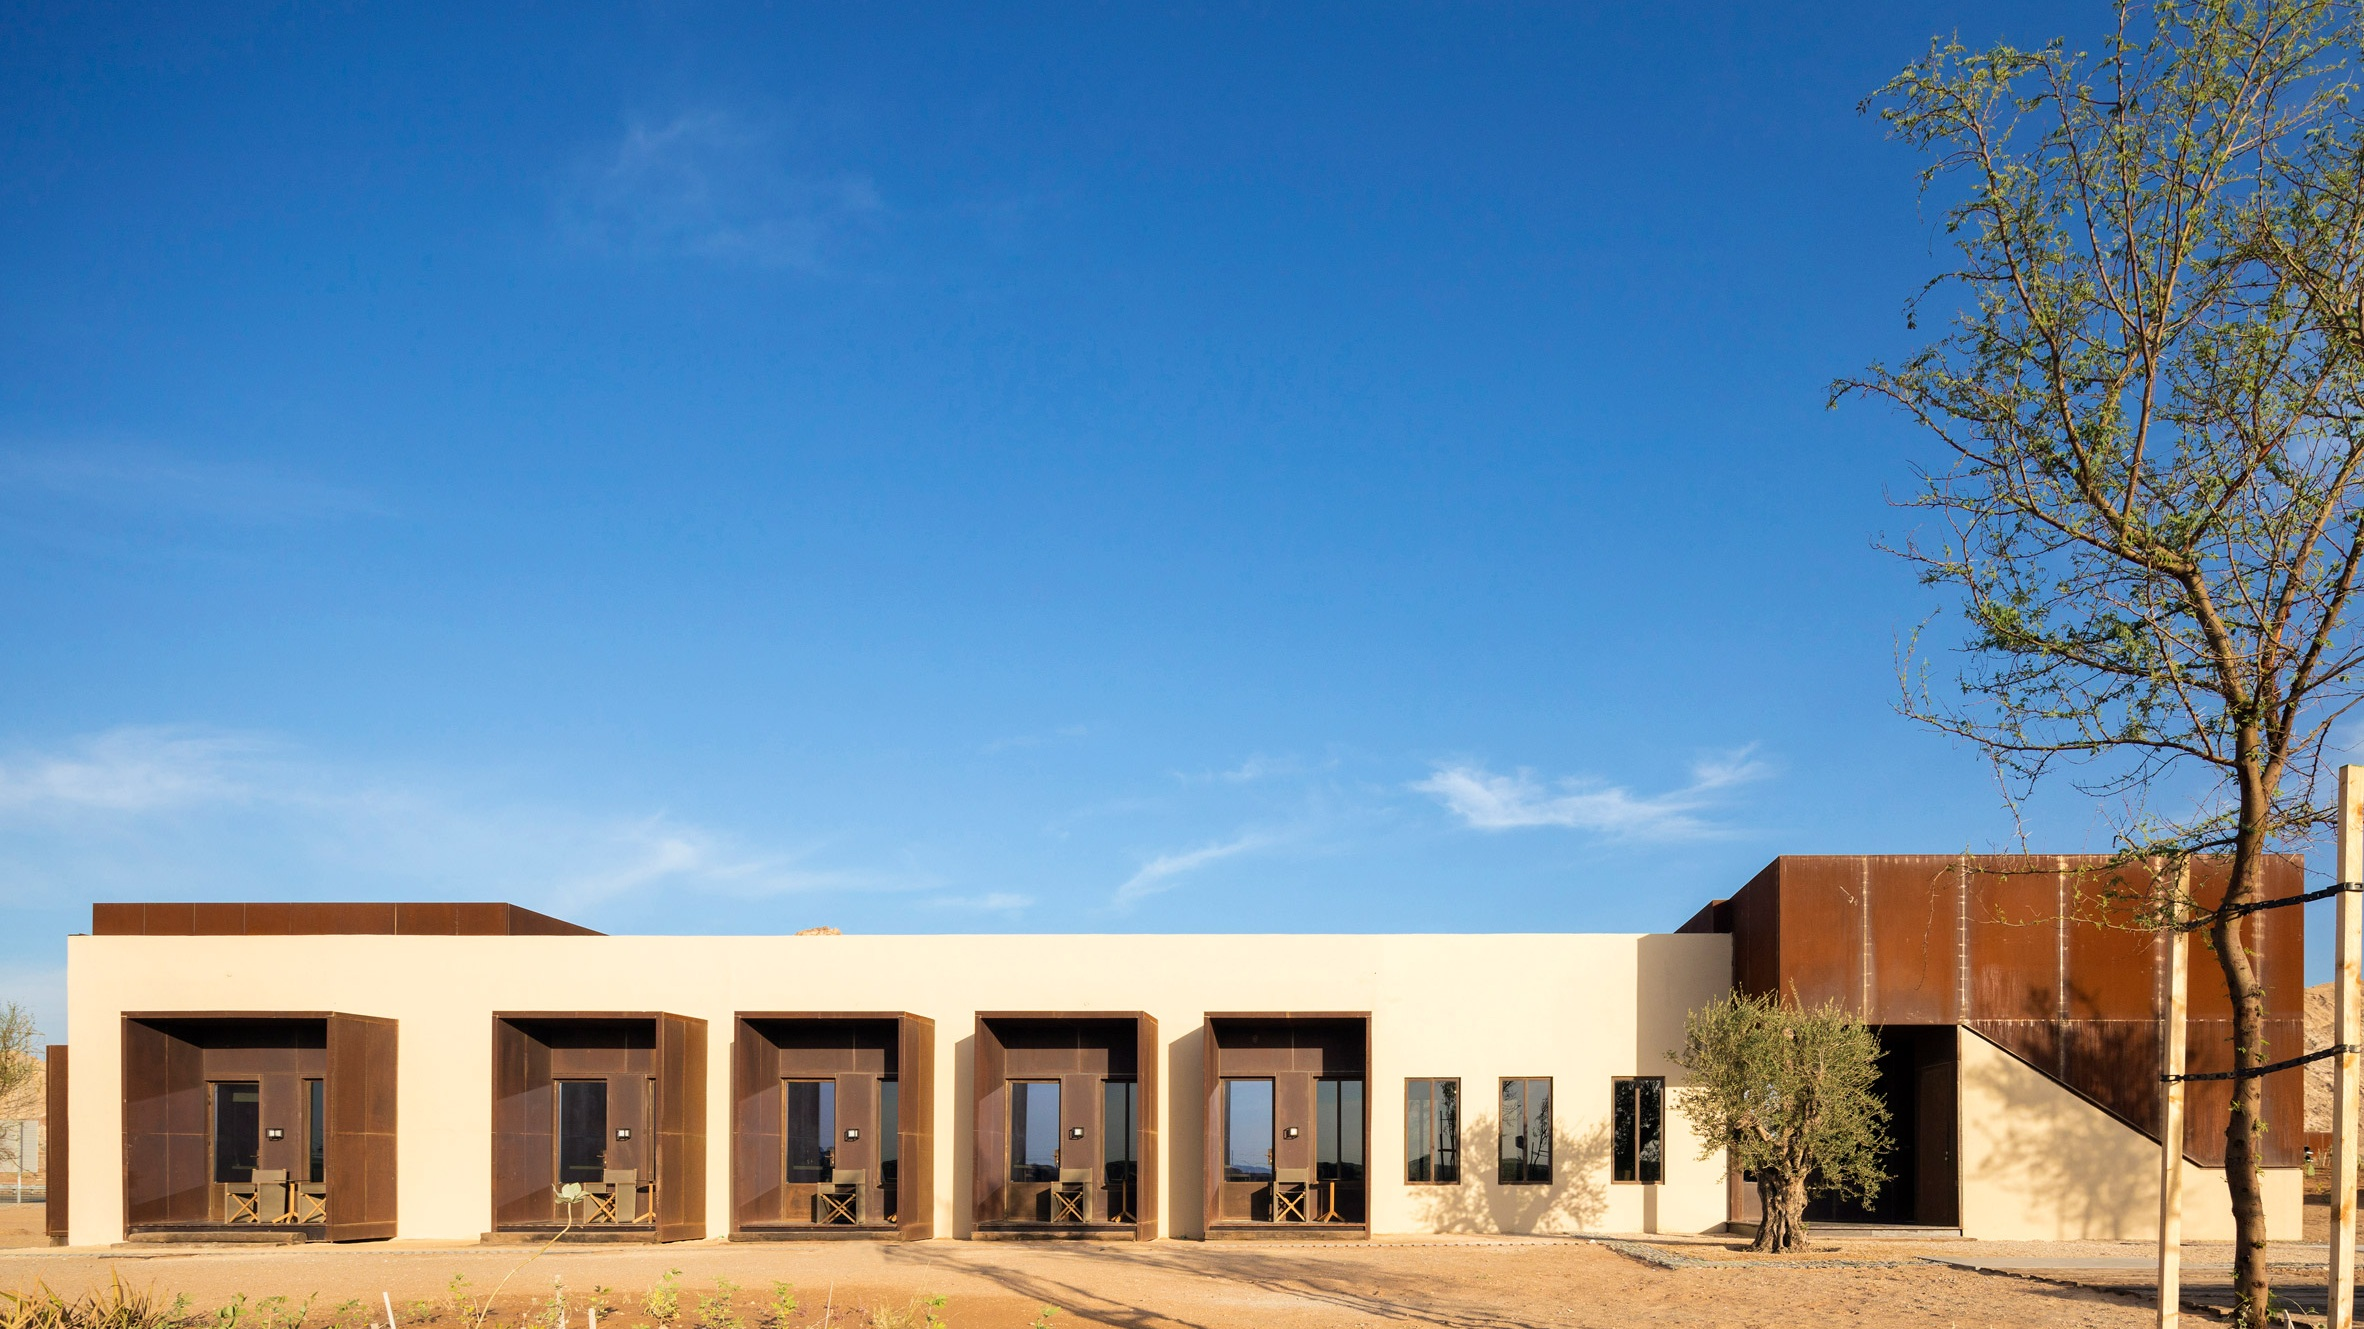 al-faya-lodge-anarchitects-architecture-photography-fernando-guerra-_dezeen_2364_col_4.jpg